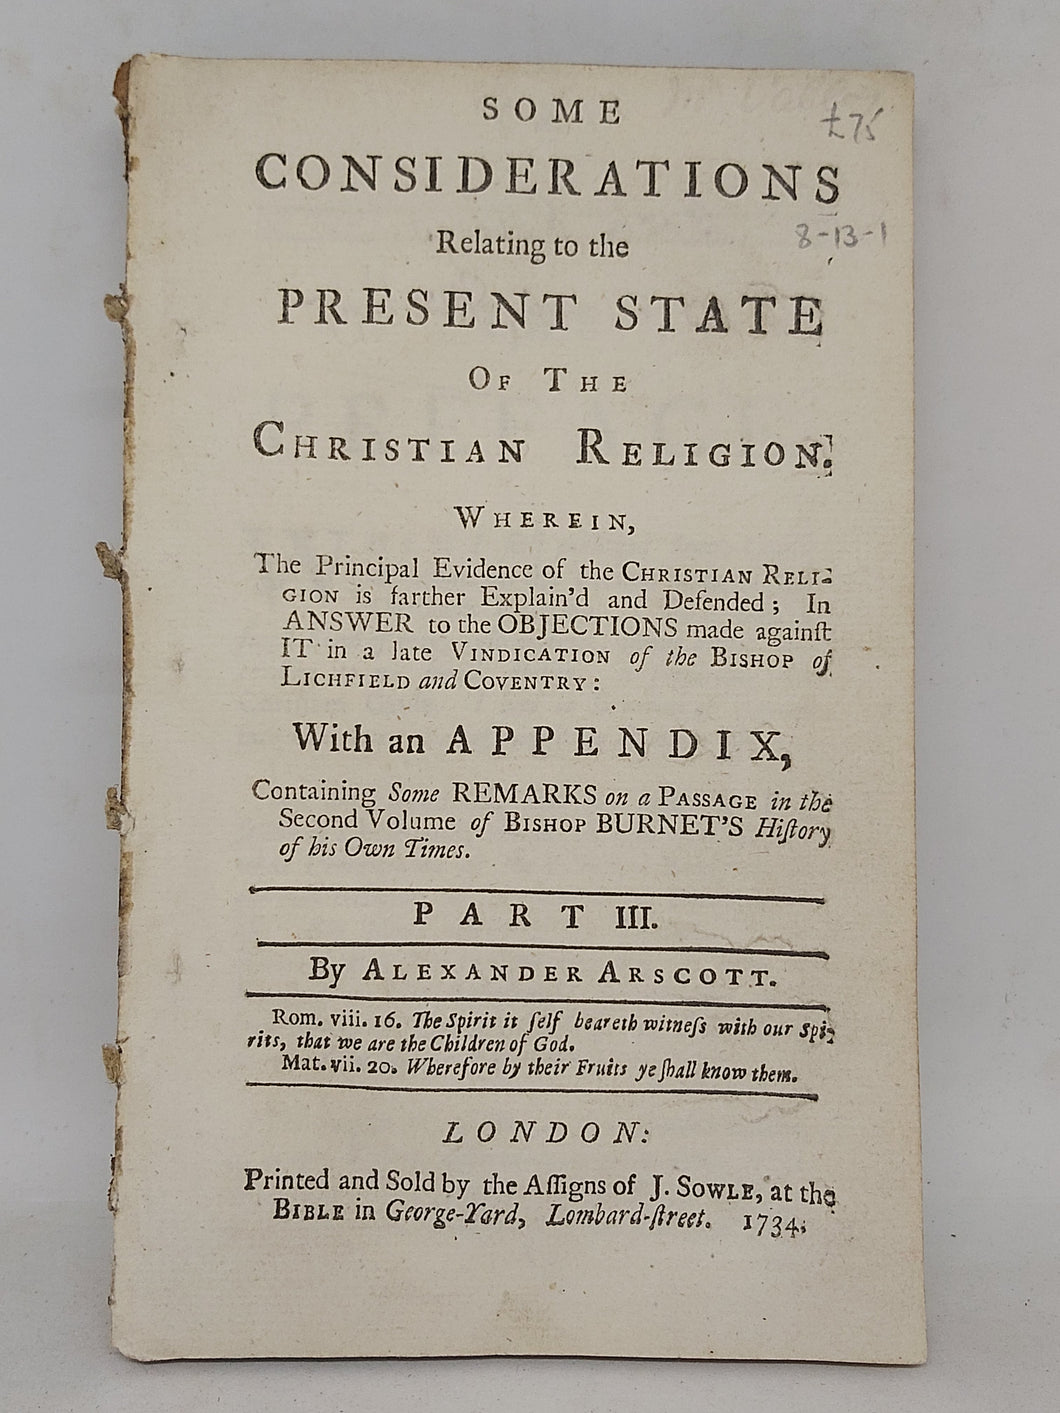 Some considerations relating to the present state of the Christian religion ... in answer to the objections made against it in a late vindication of the Bishop of Lichfield and Coventry, Part III, 1734